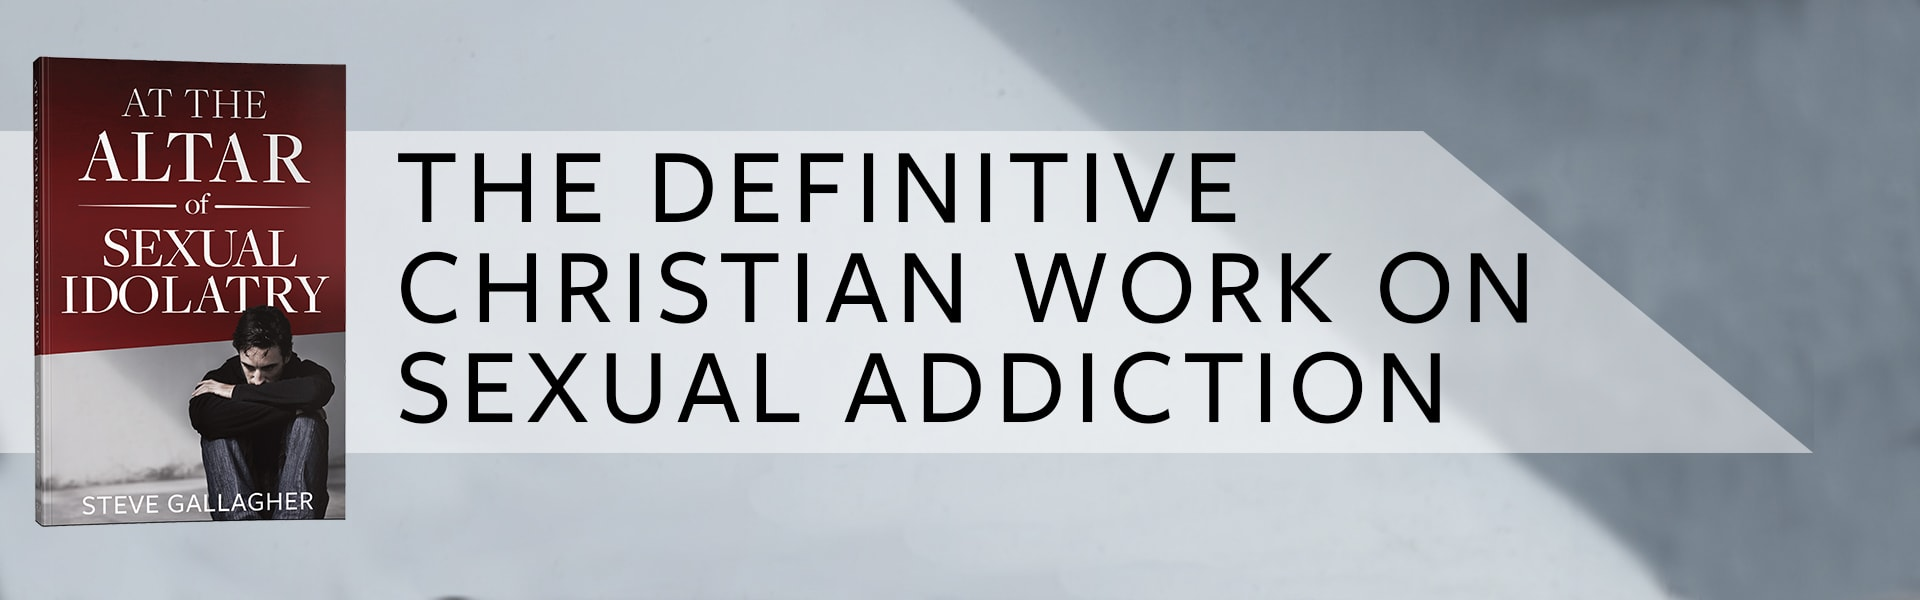 At the Altar of Sexual Idolatry: The Definitive Christian Work on Sexual Addiction